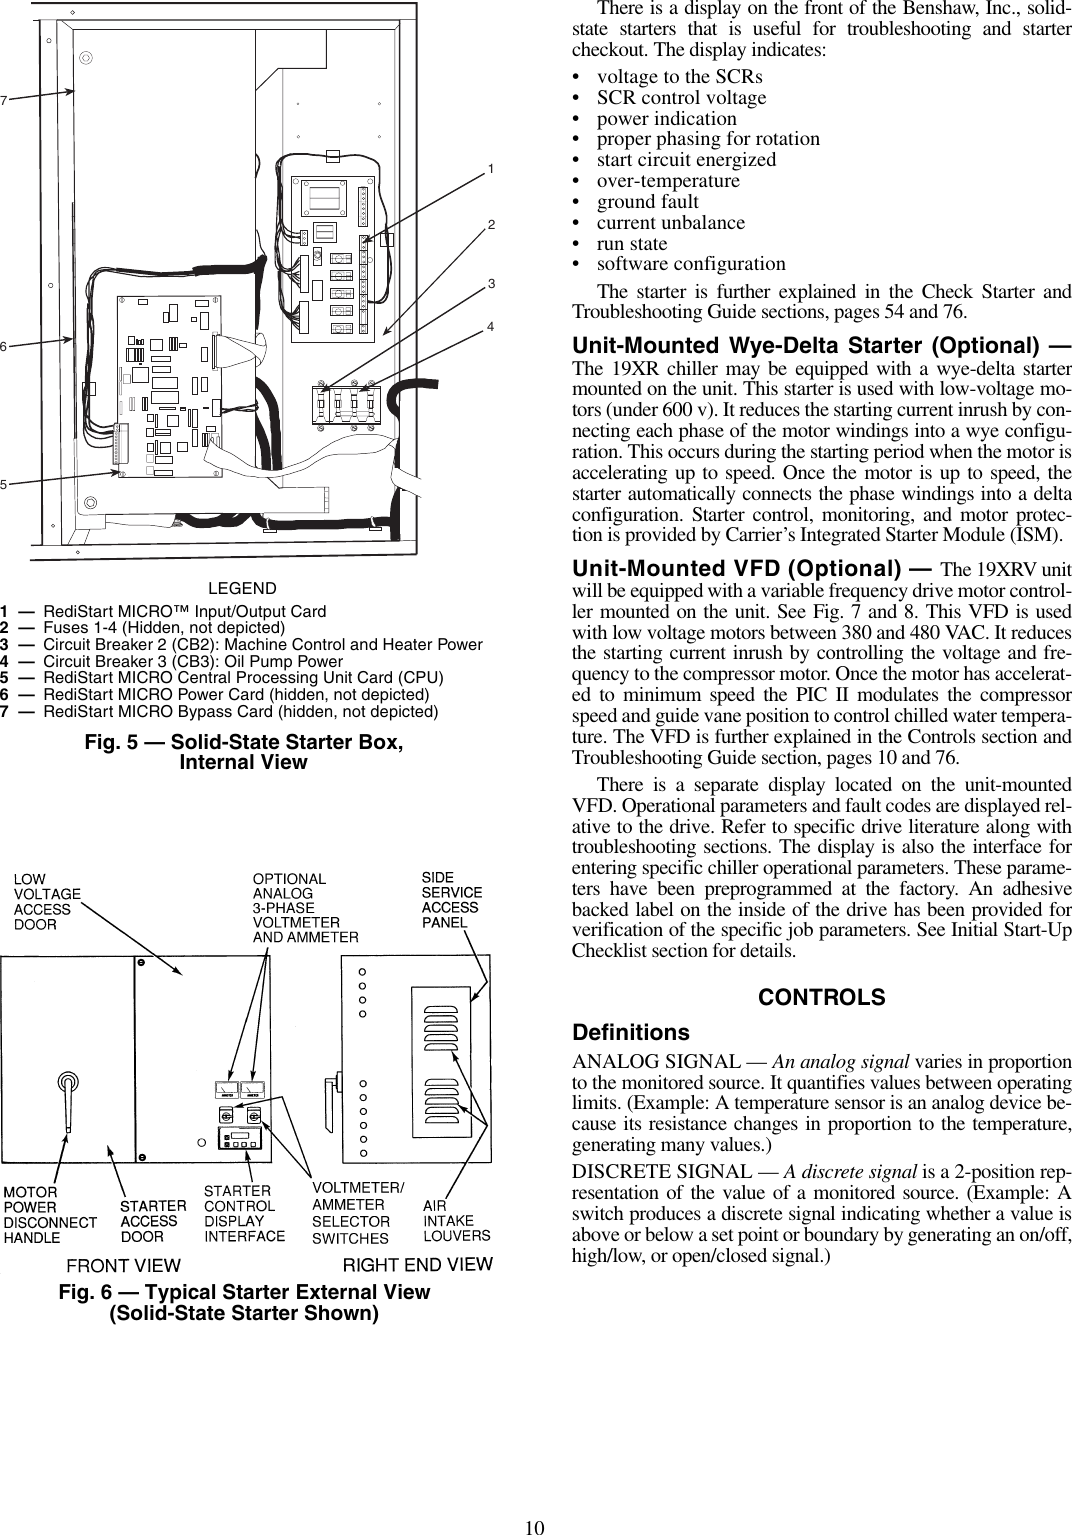 Carrier Evergreen 19Xr Users Manual on